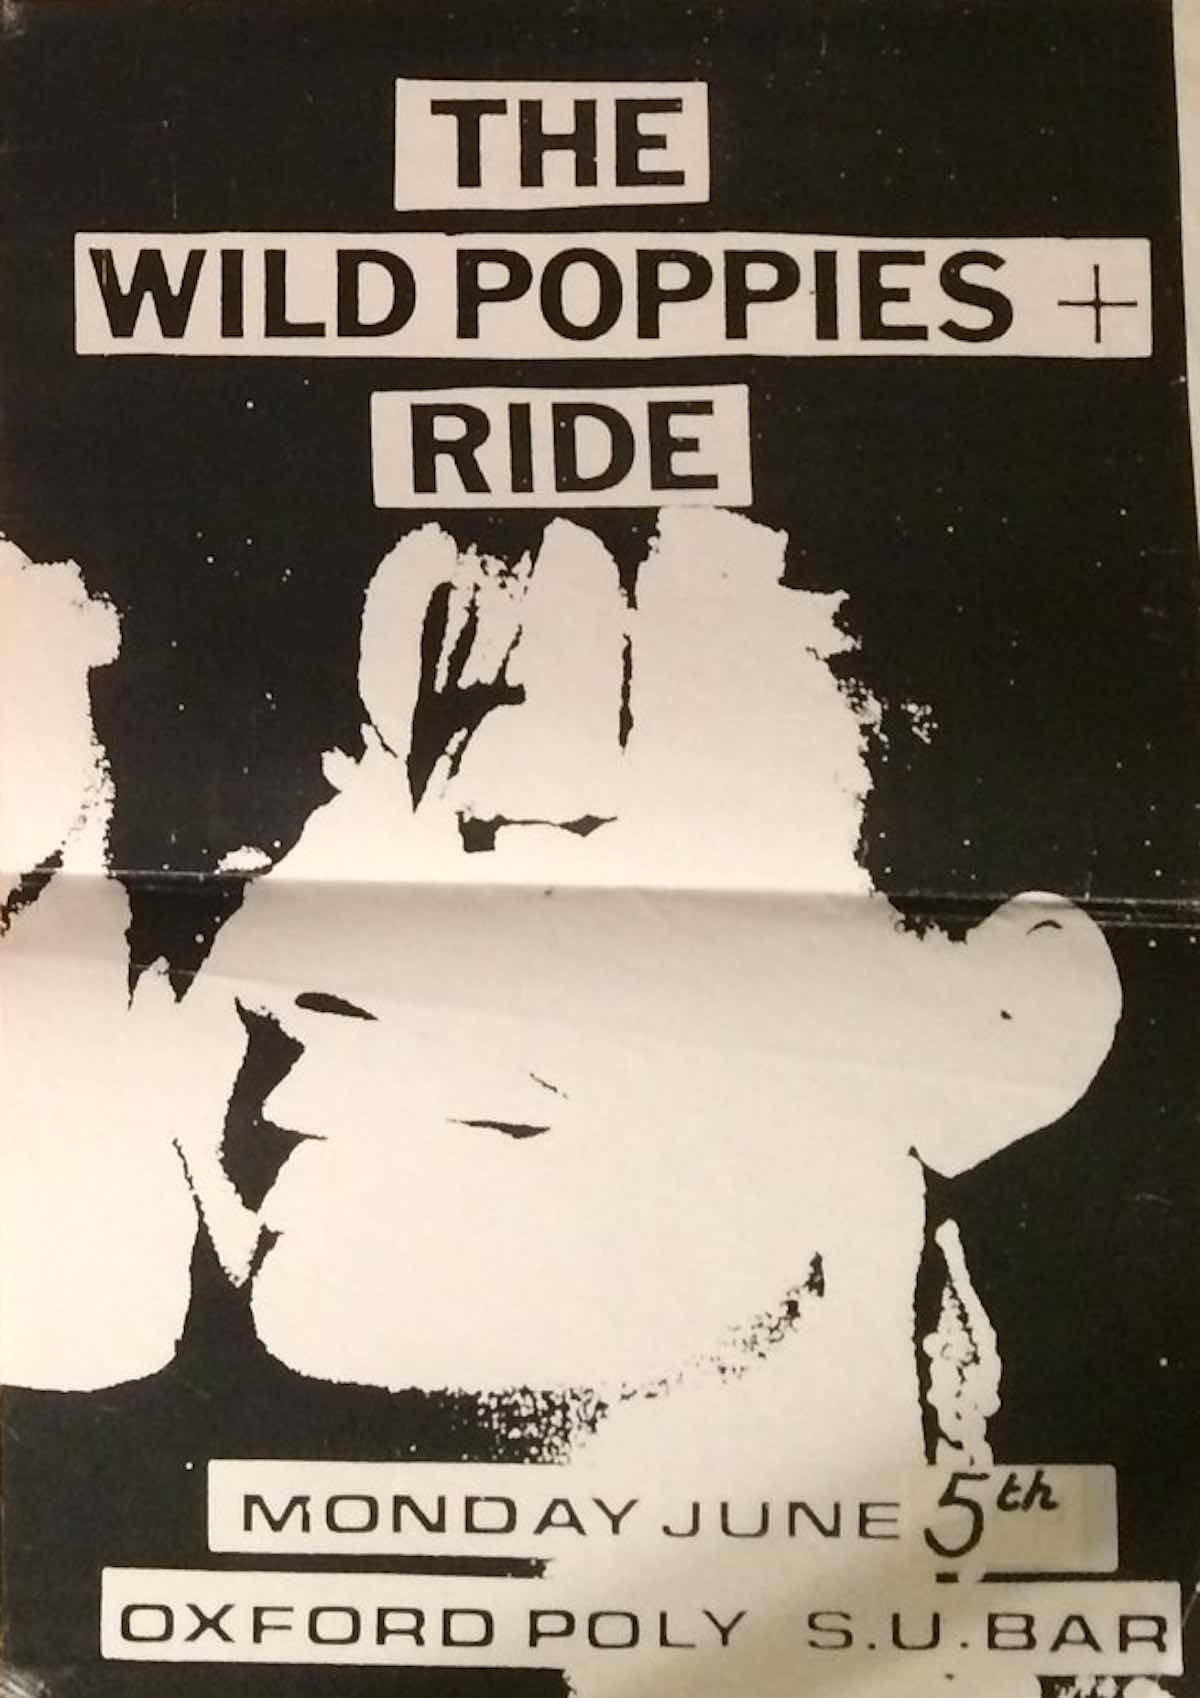 Oxford Poly June 1989 poster